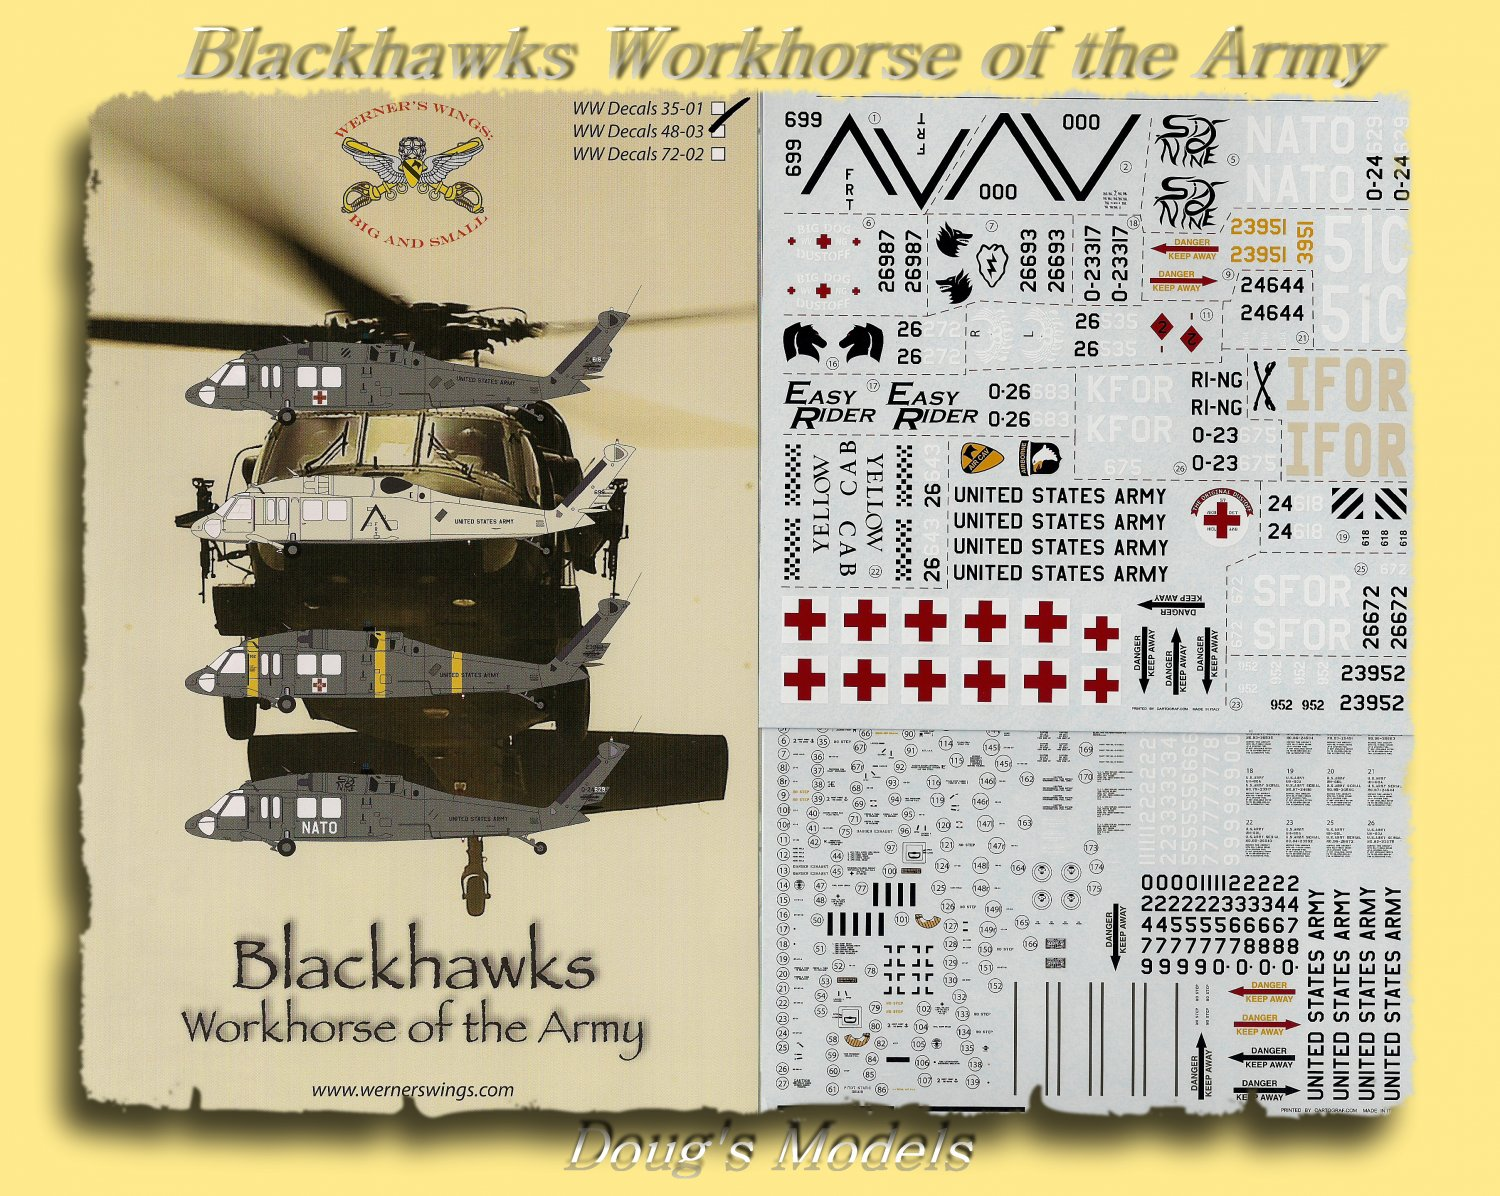 Werner's Wings 1/48 Blackhawks Workhorse of the Army